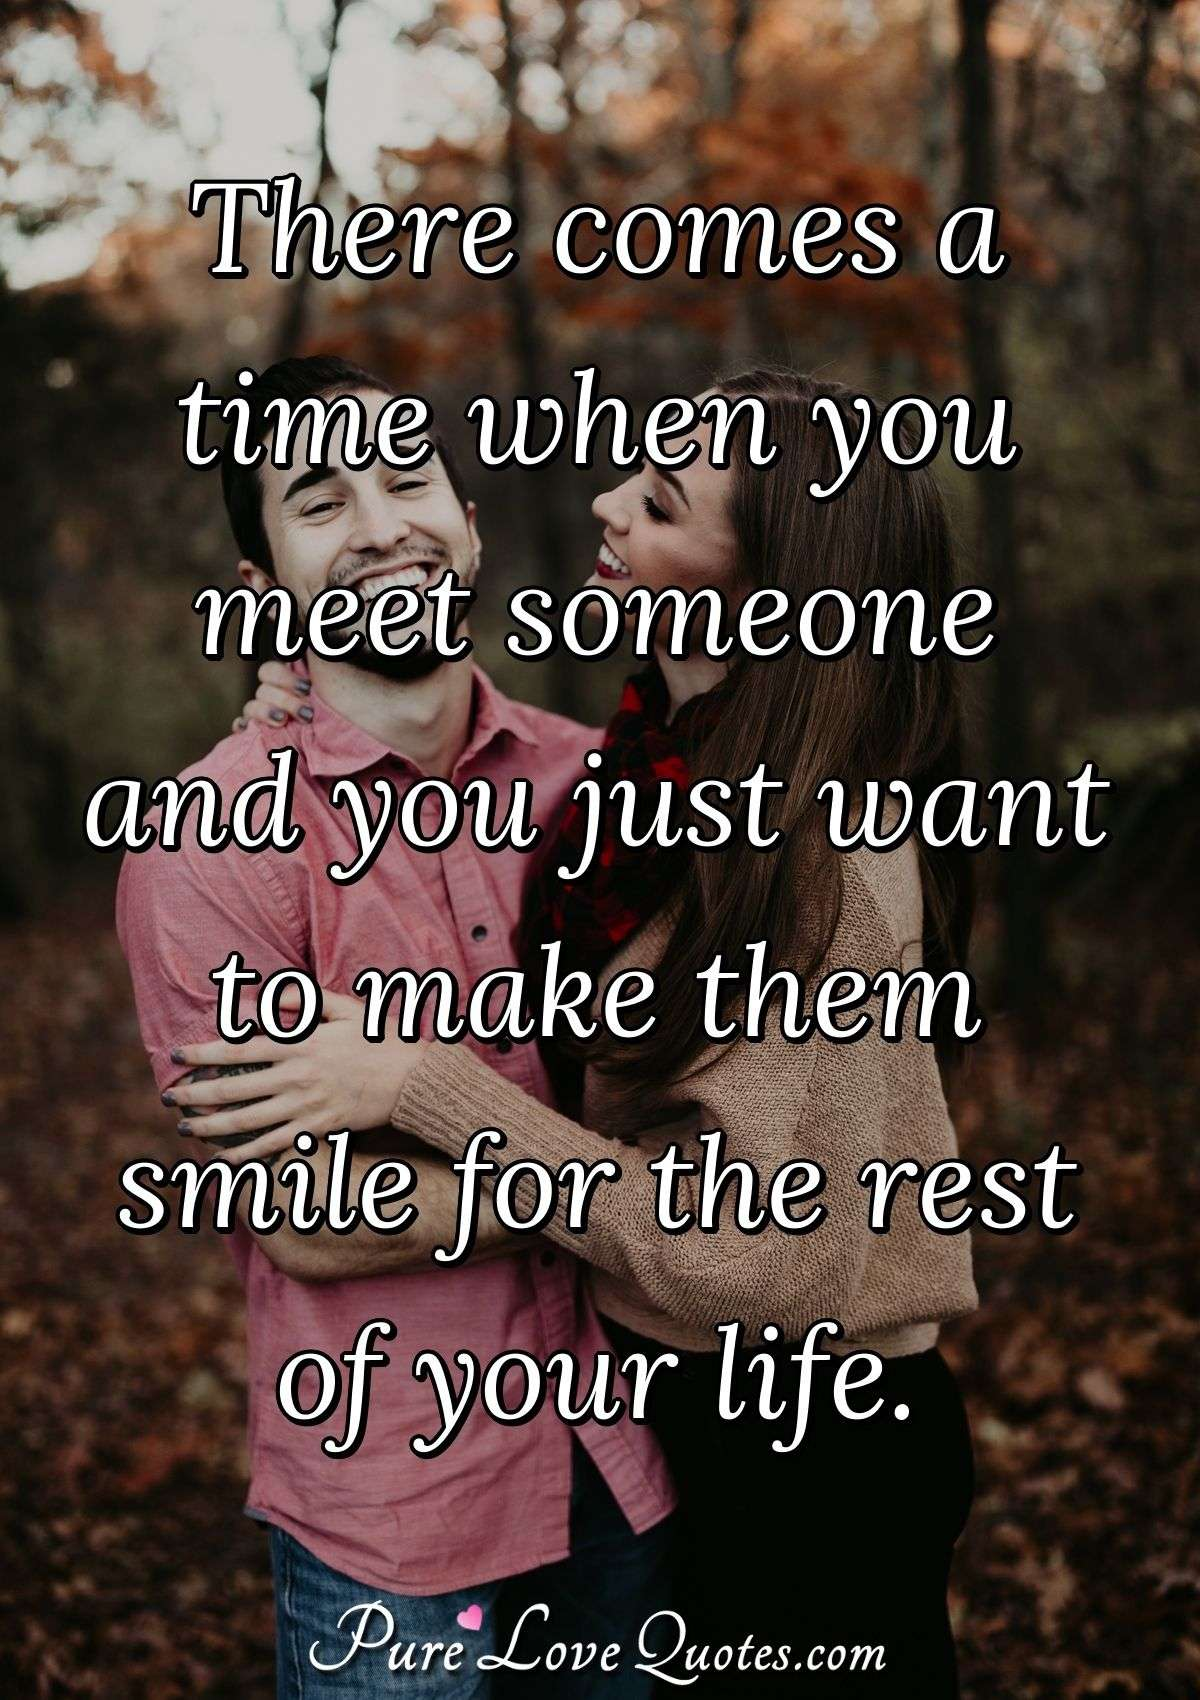 There comes a time when you meet someone and you just want to make them smile for the rest of your life. - Anonymous